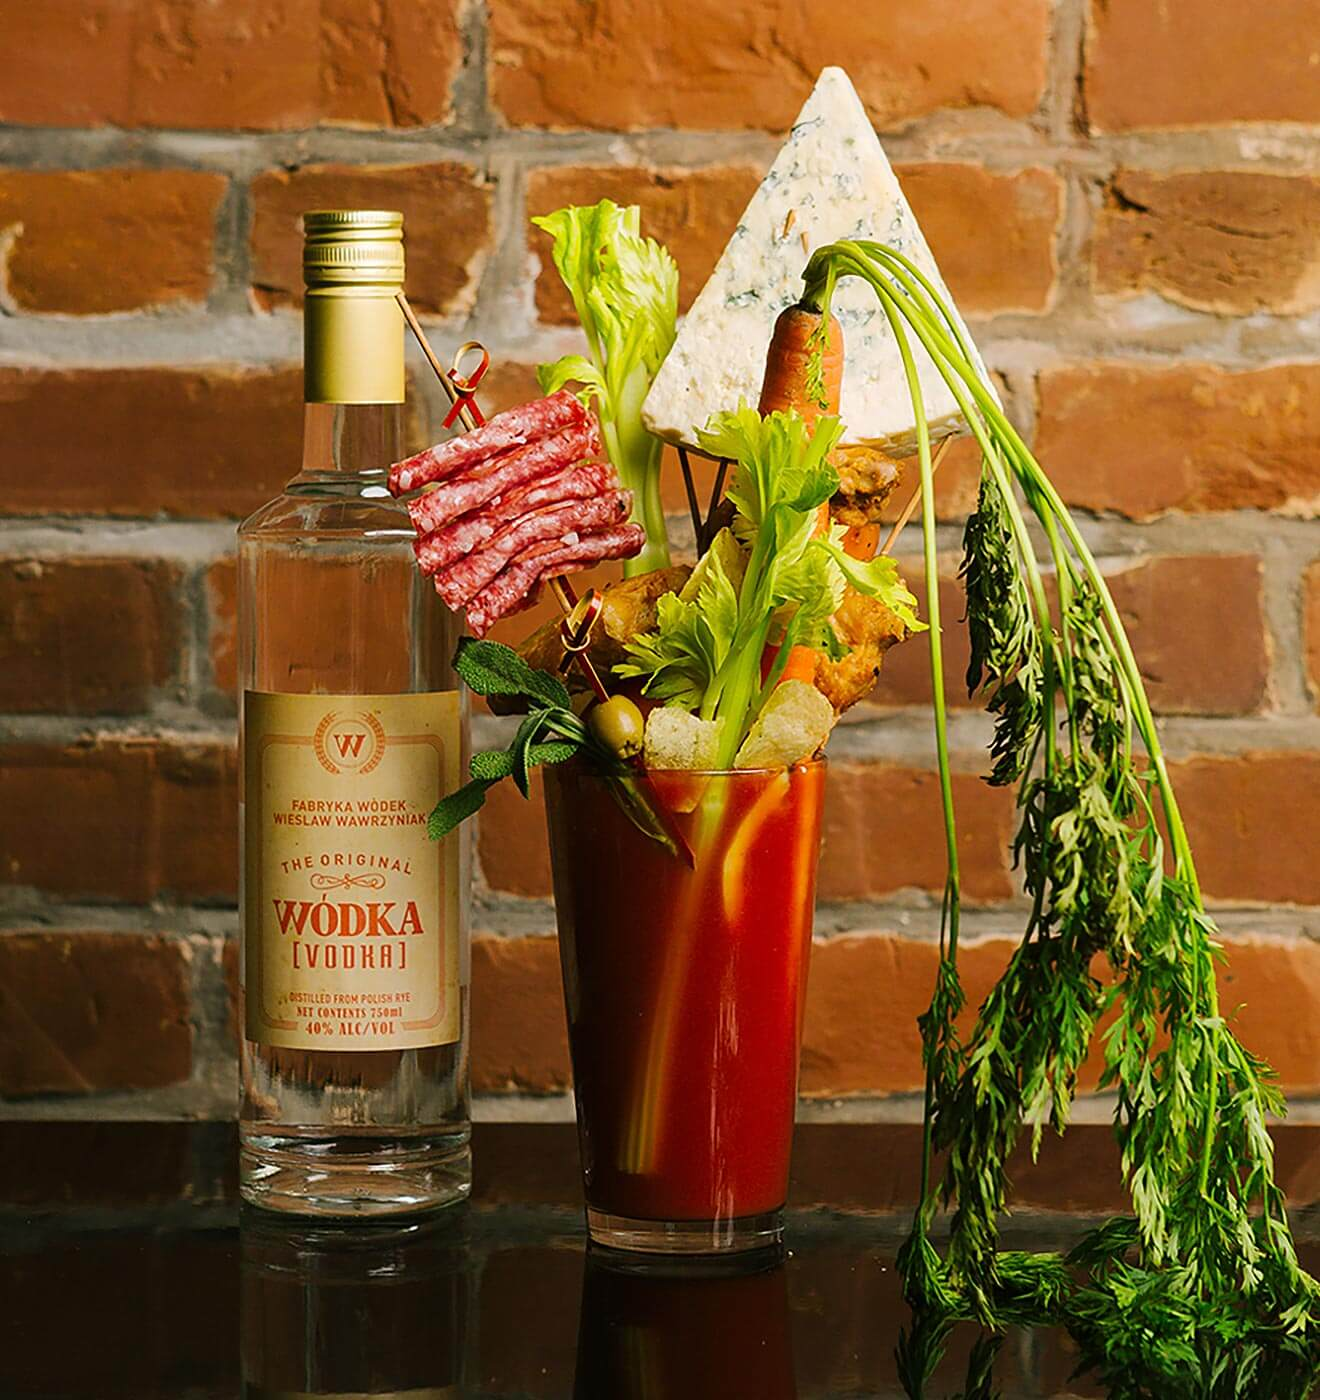 Wódka Bloody Mary, bottle and lots of garnish, brick wall background